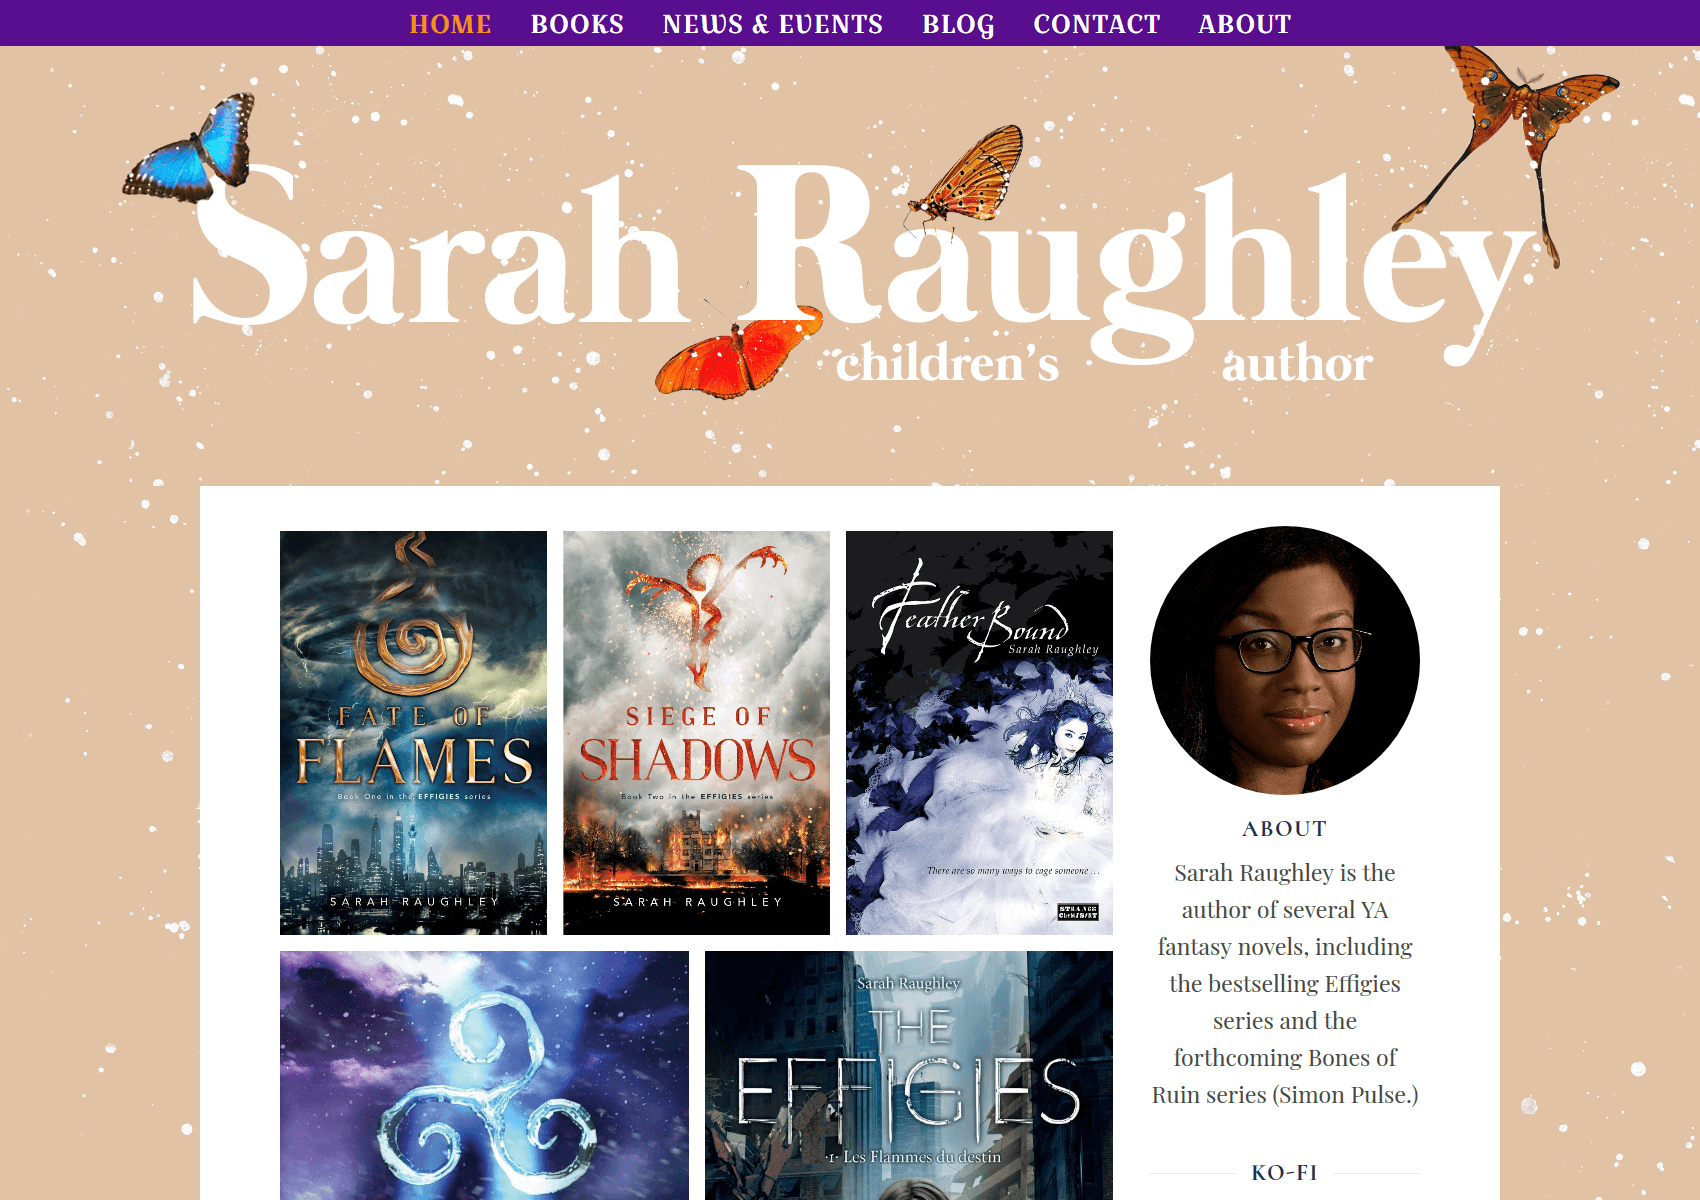 Large-Screen shot of SarahRaughley.com.